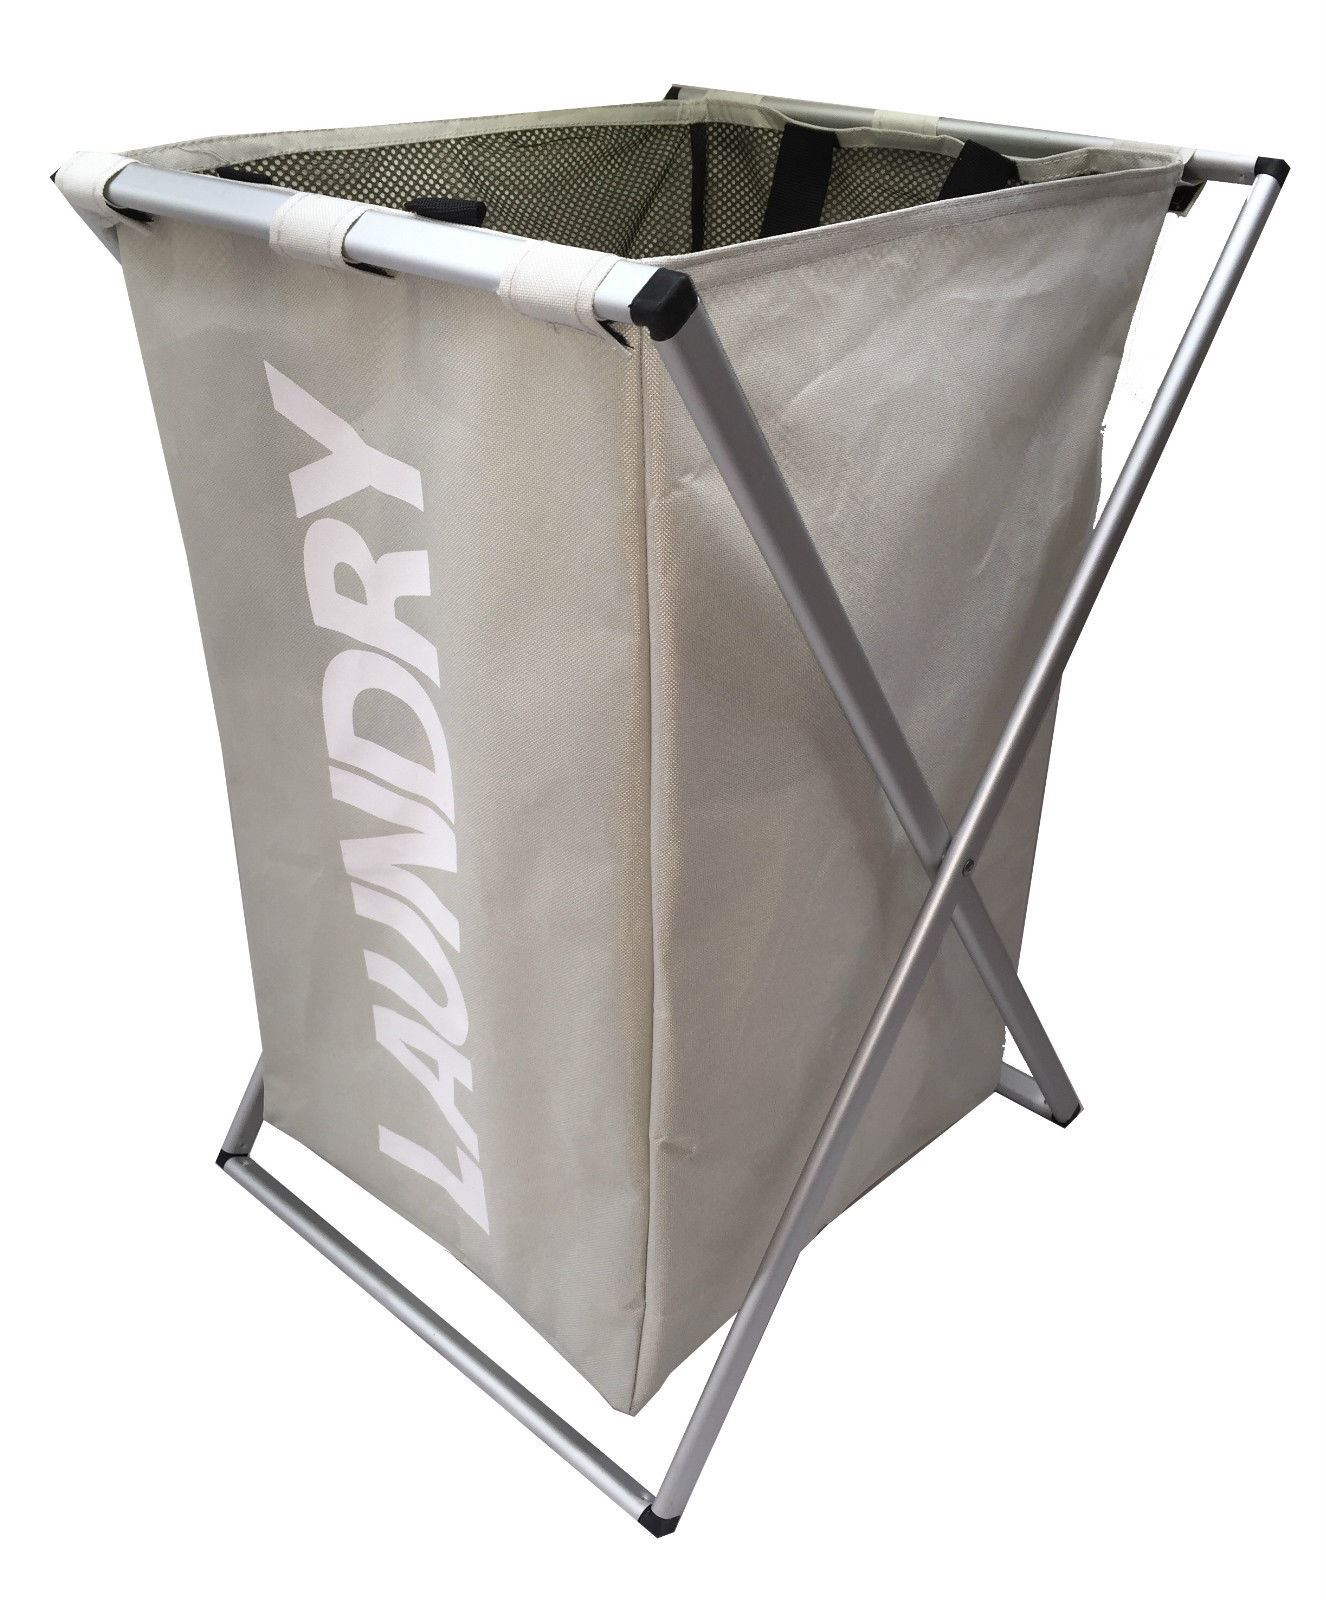 New Collapsible Folding Laundry Bag Bin Hamper Storage